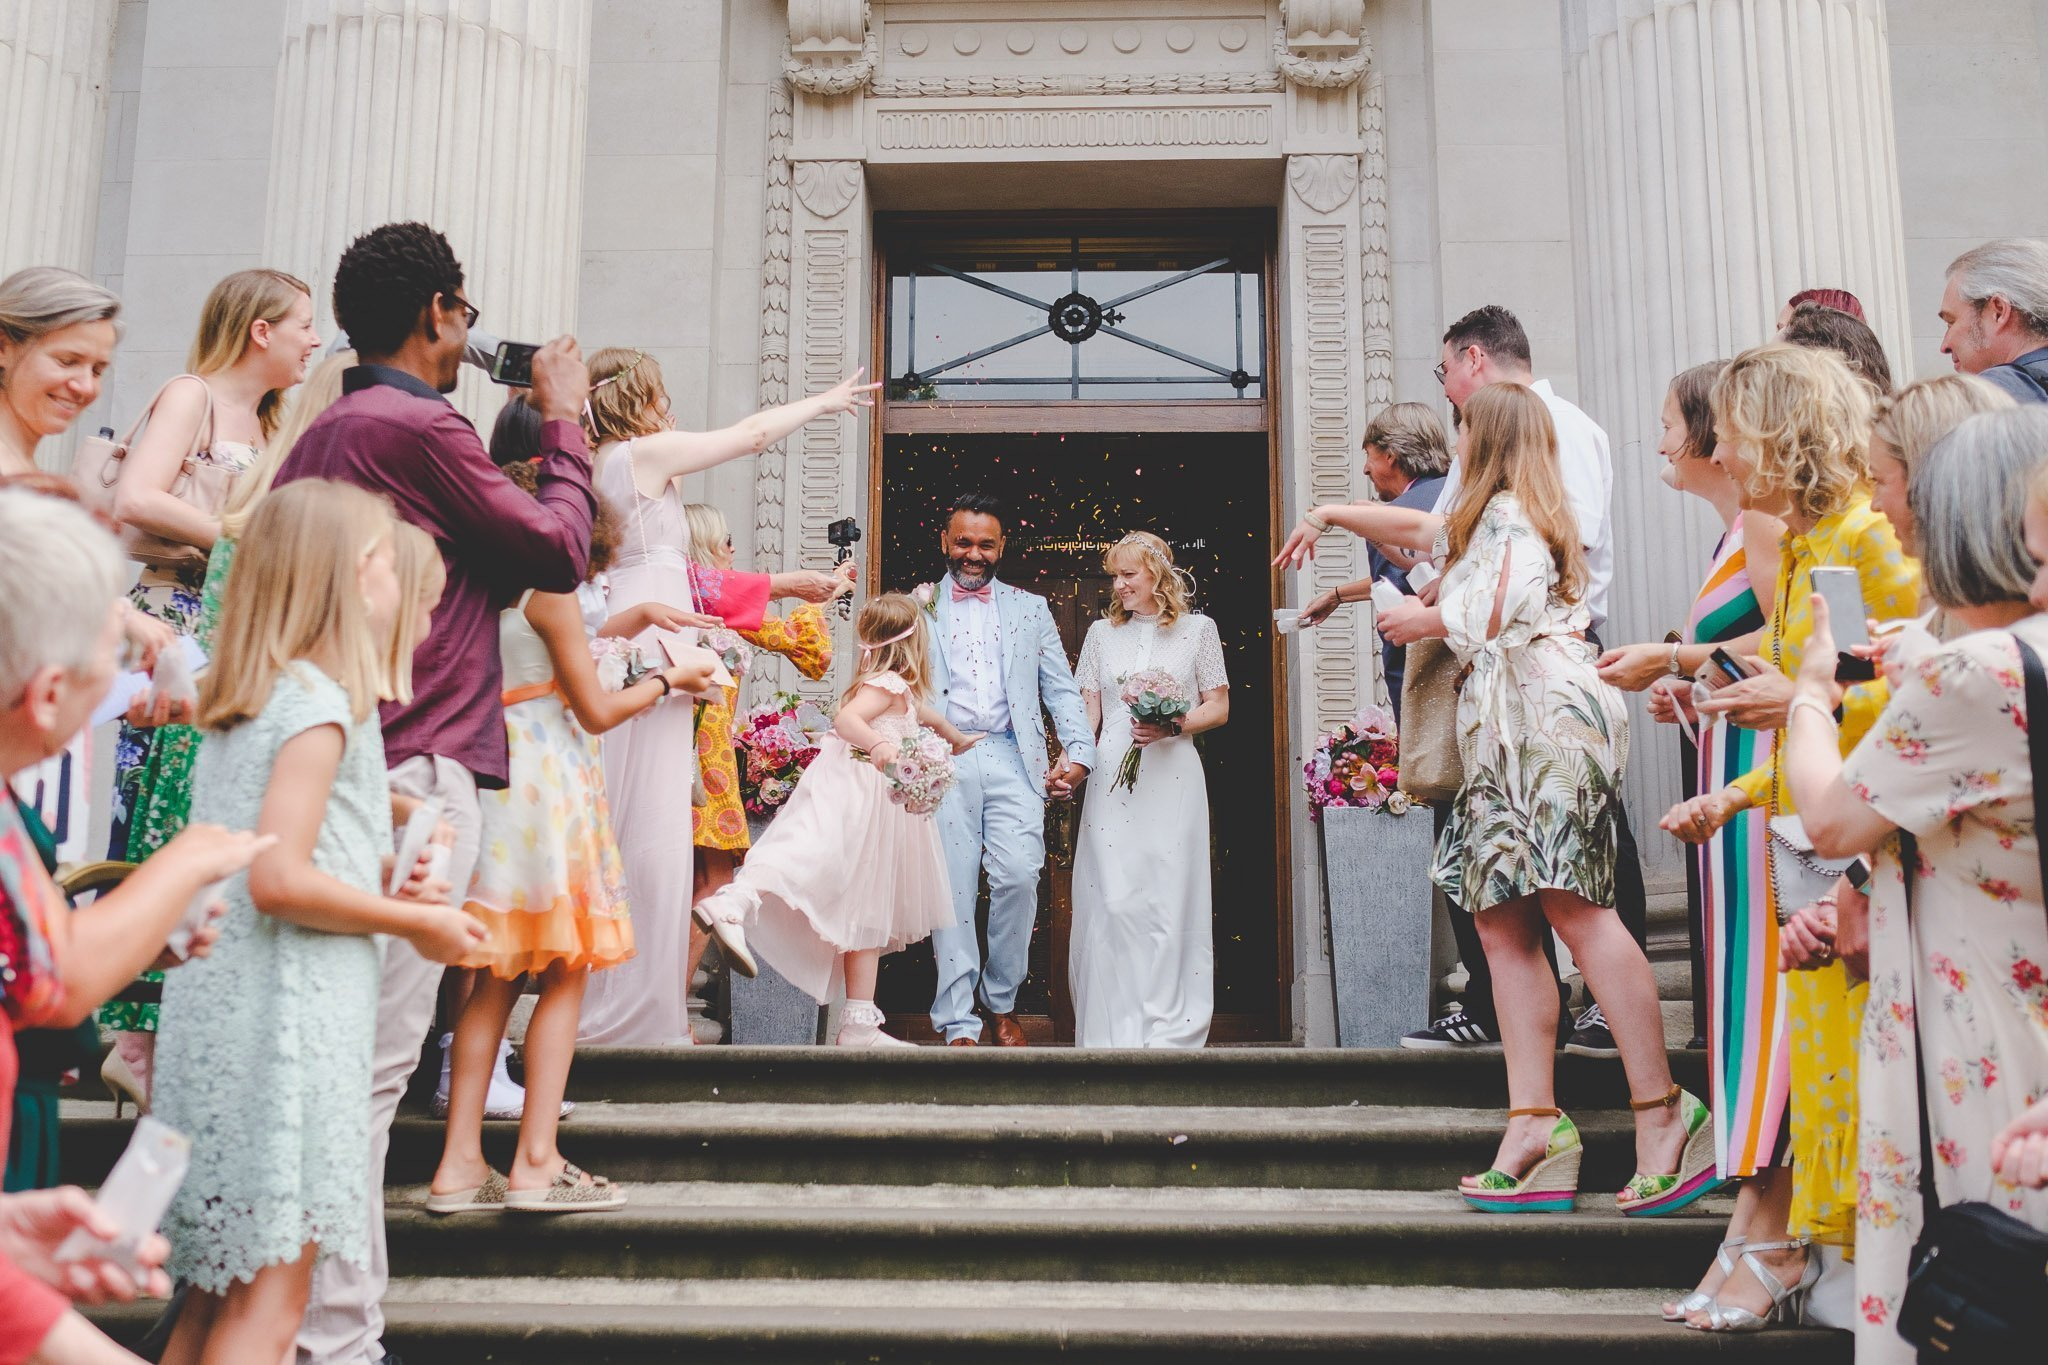 Confetti being thrown at a wedding on the steps of the Old Marylebone Town Hall London. Photography by thatthingyoupluck.